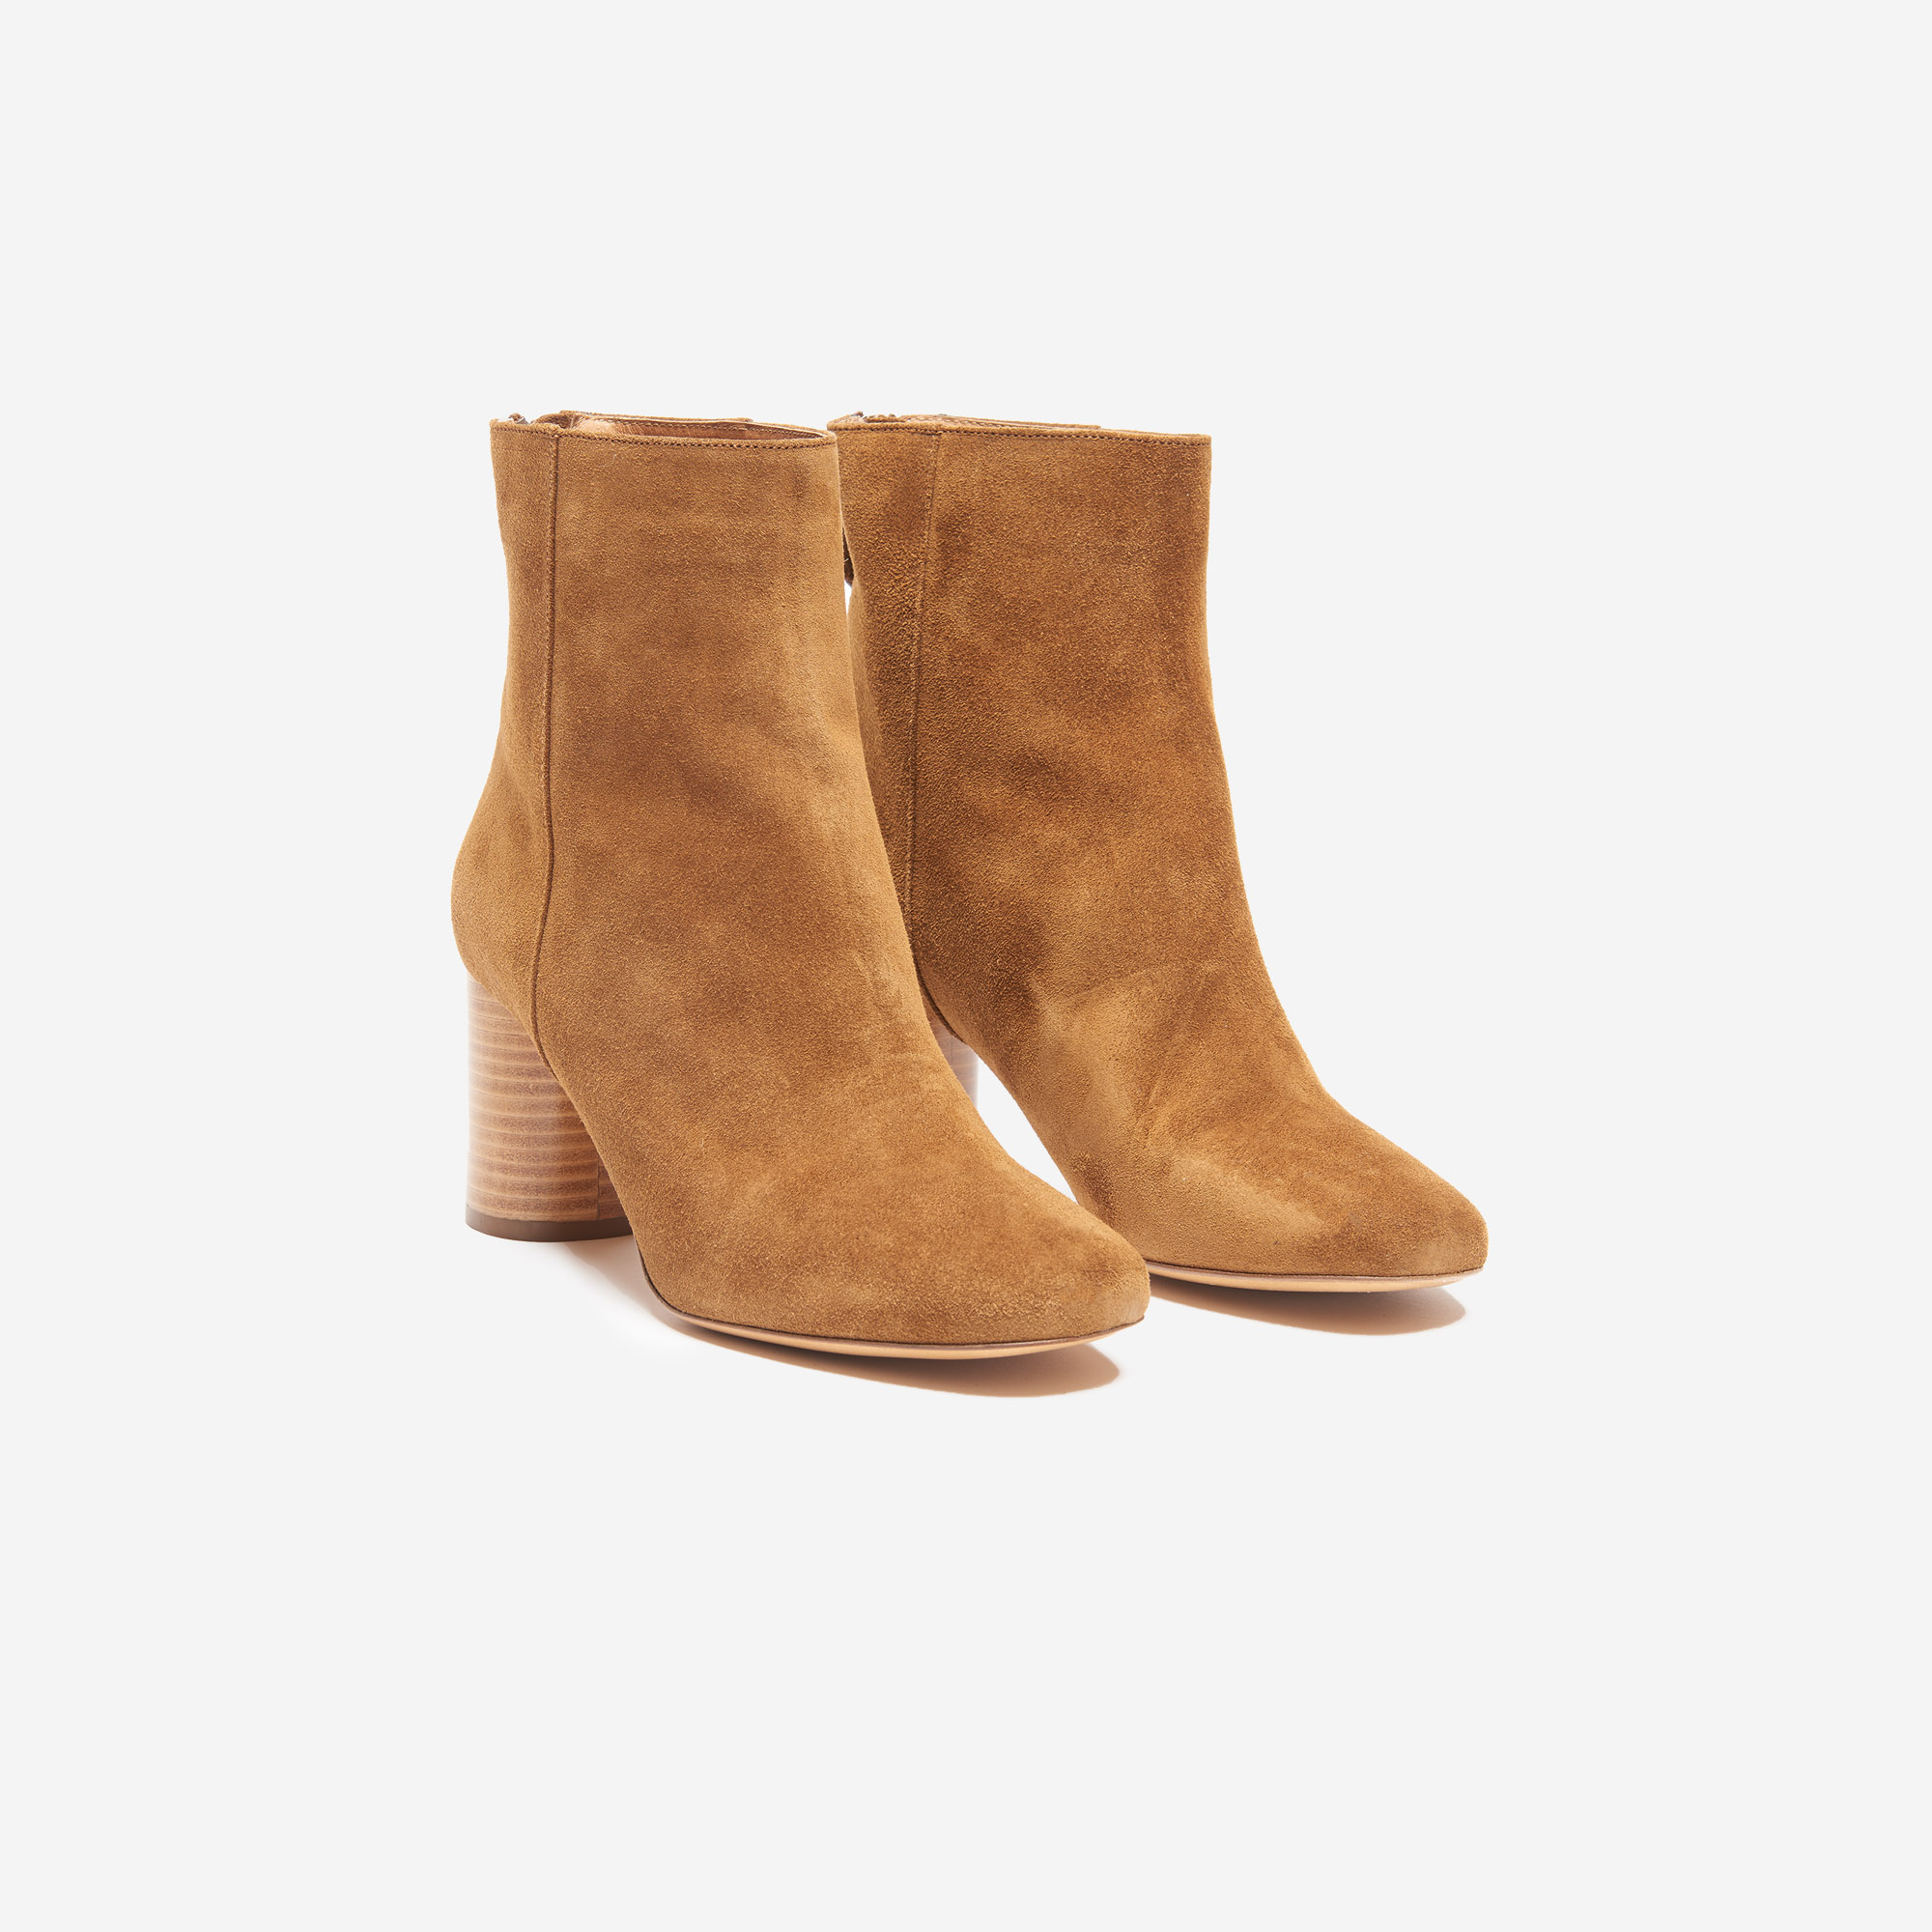 Sandro Suede Ankle Boots xDYH2lN9hW